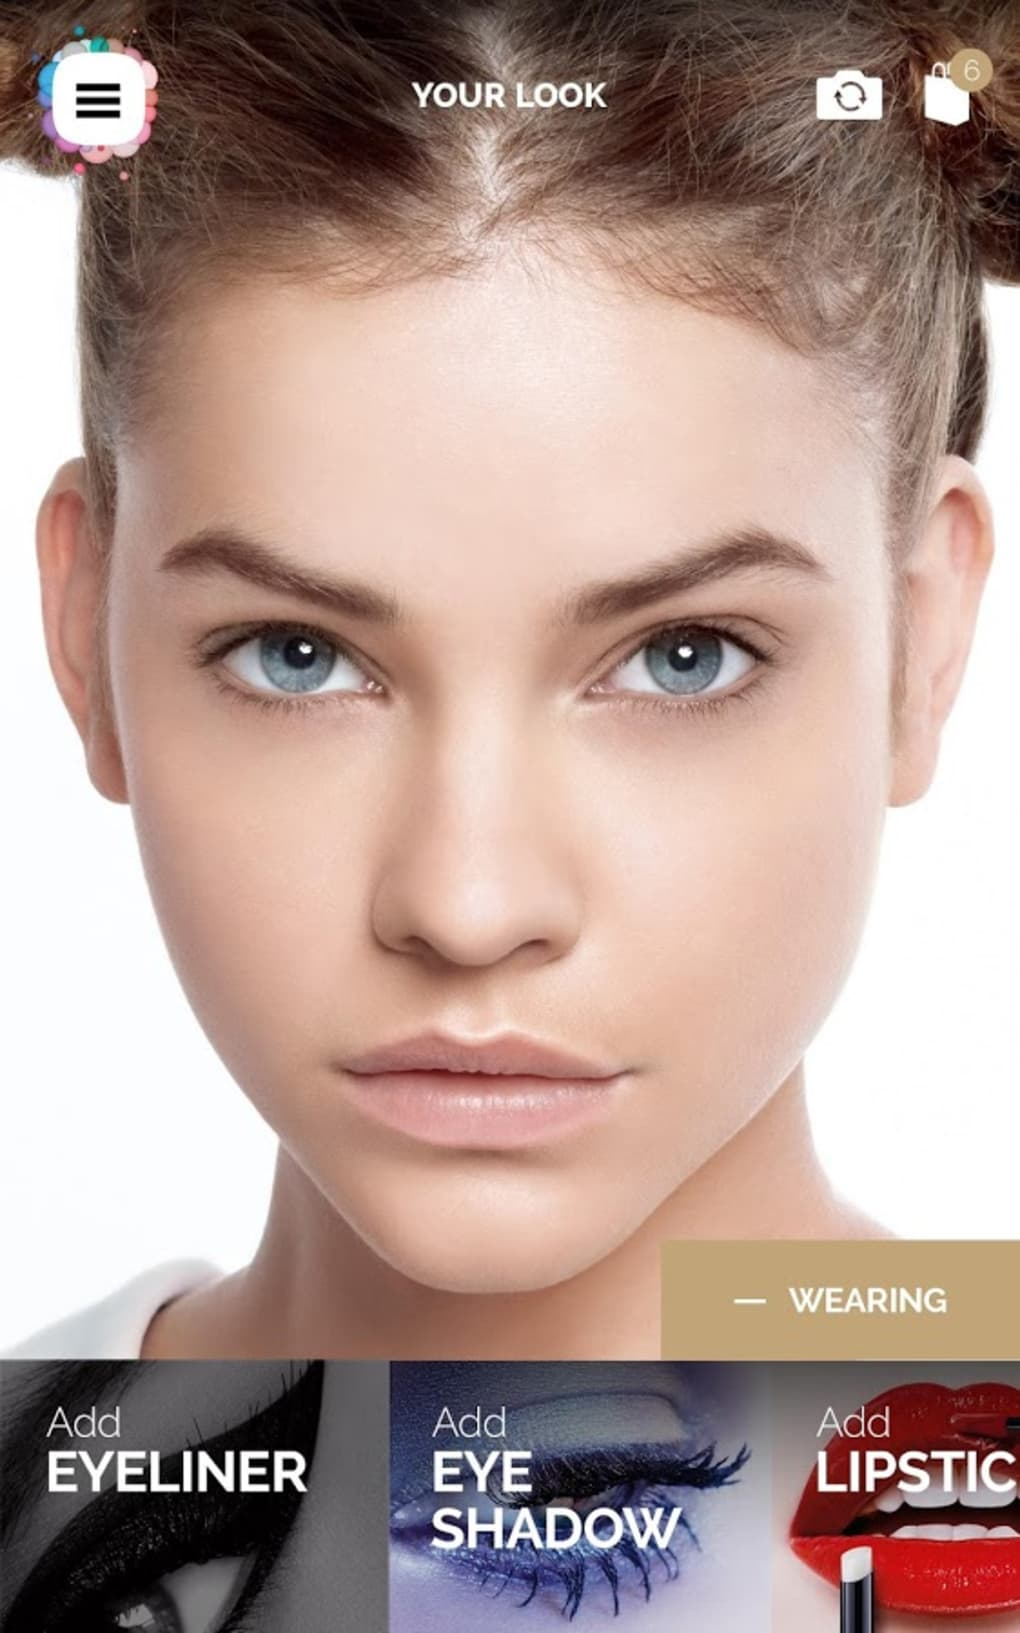 Extreem Makeup Genius for Android - Download @CC47